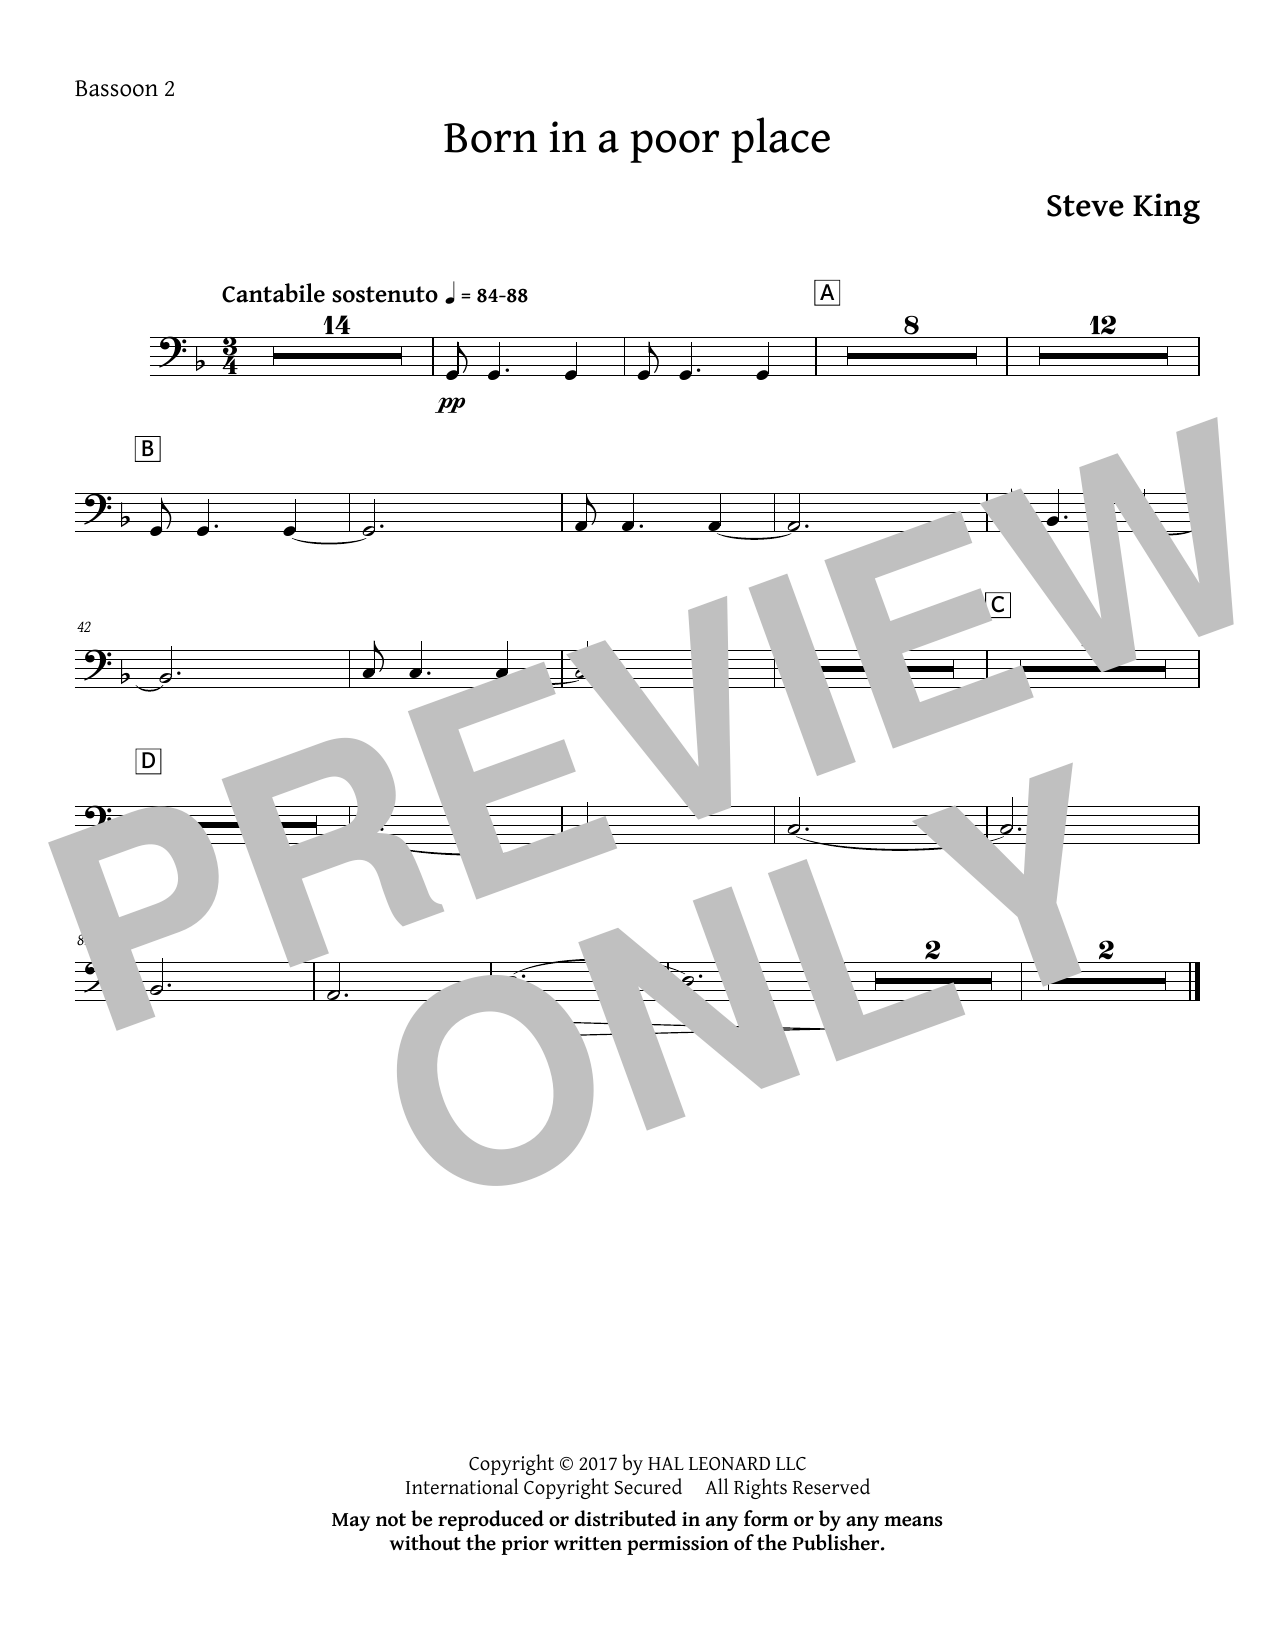 Born in a Poor Place - Bassoon 2 Sheet Music